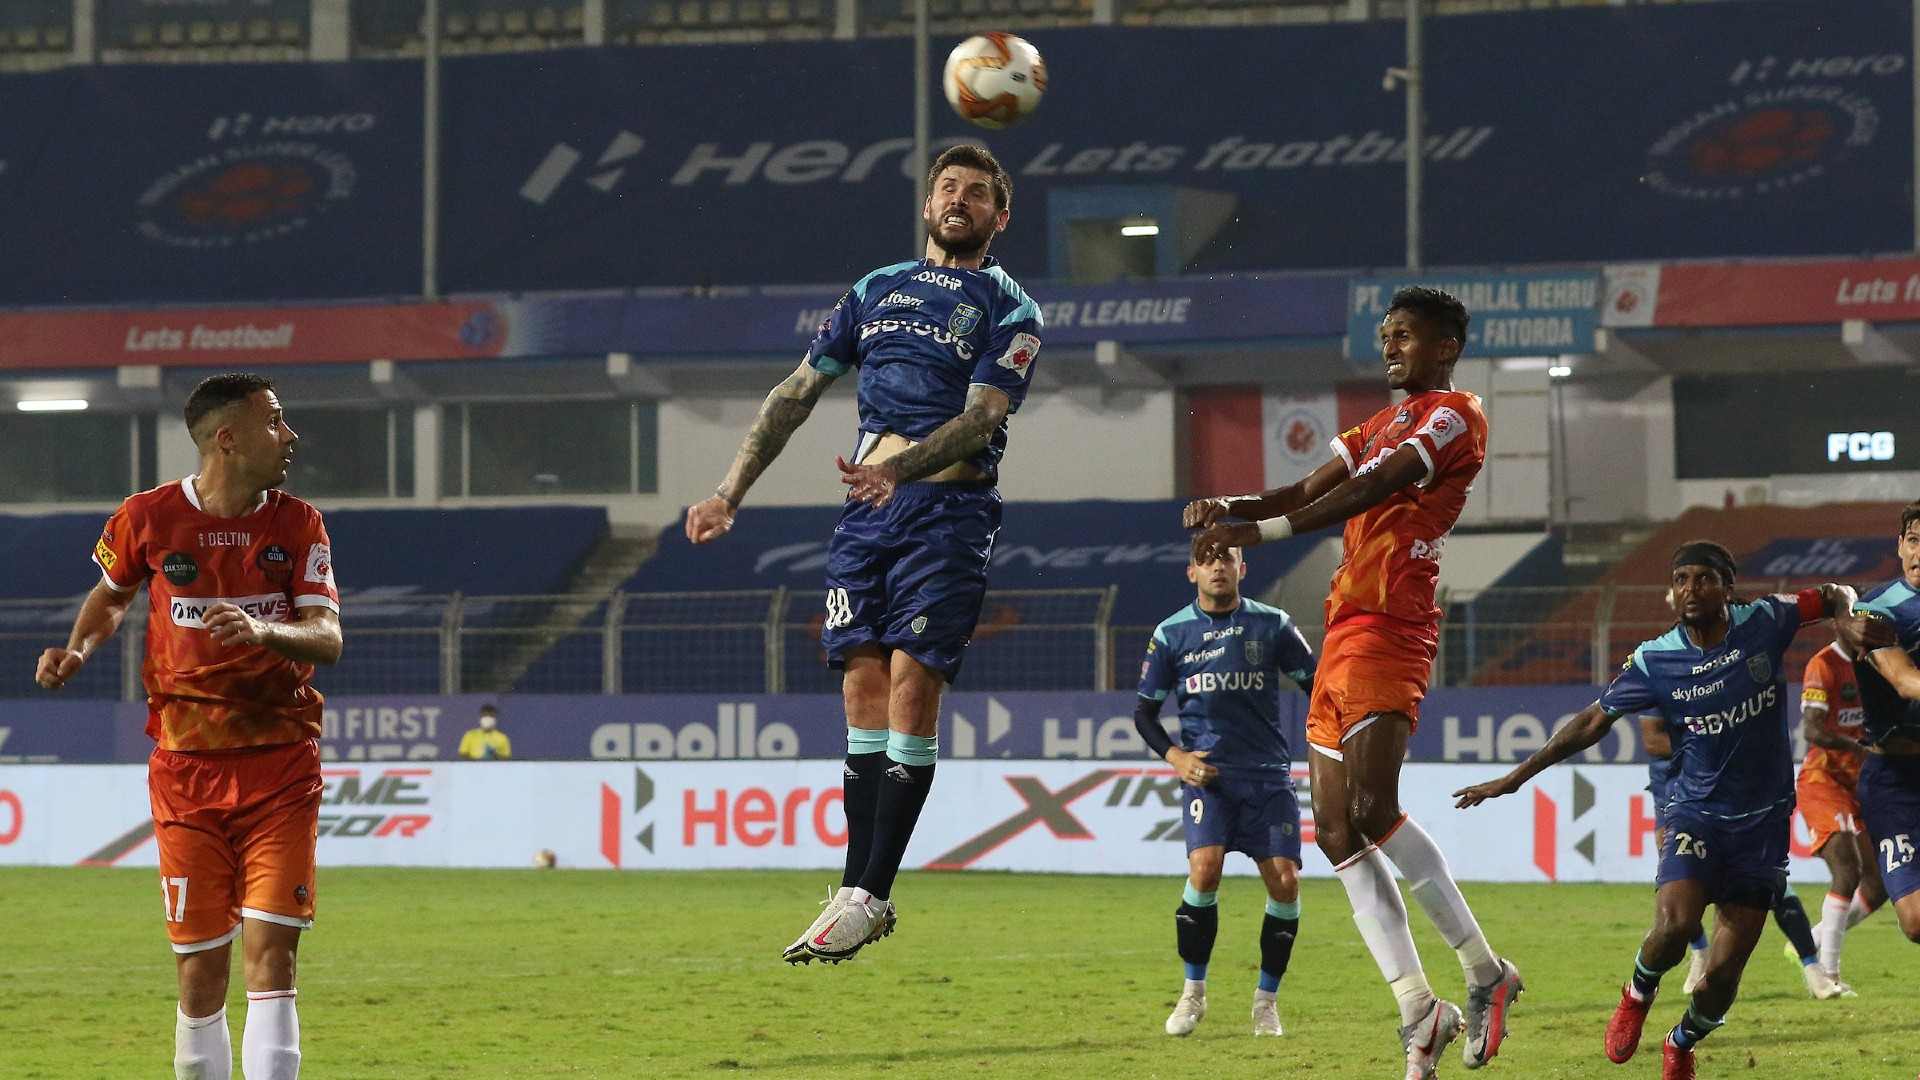 Not so super - What is wrong with Kerala Blasters' attack?